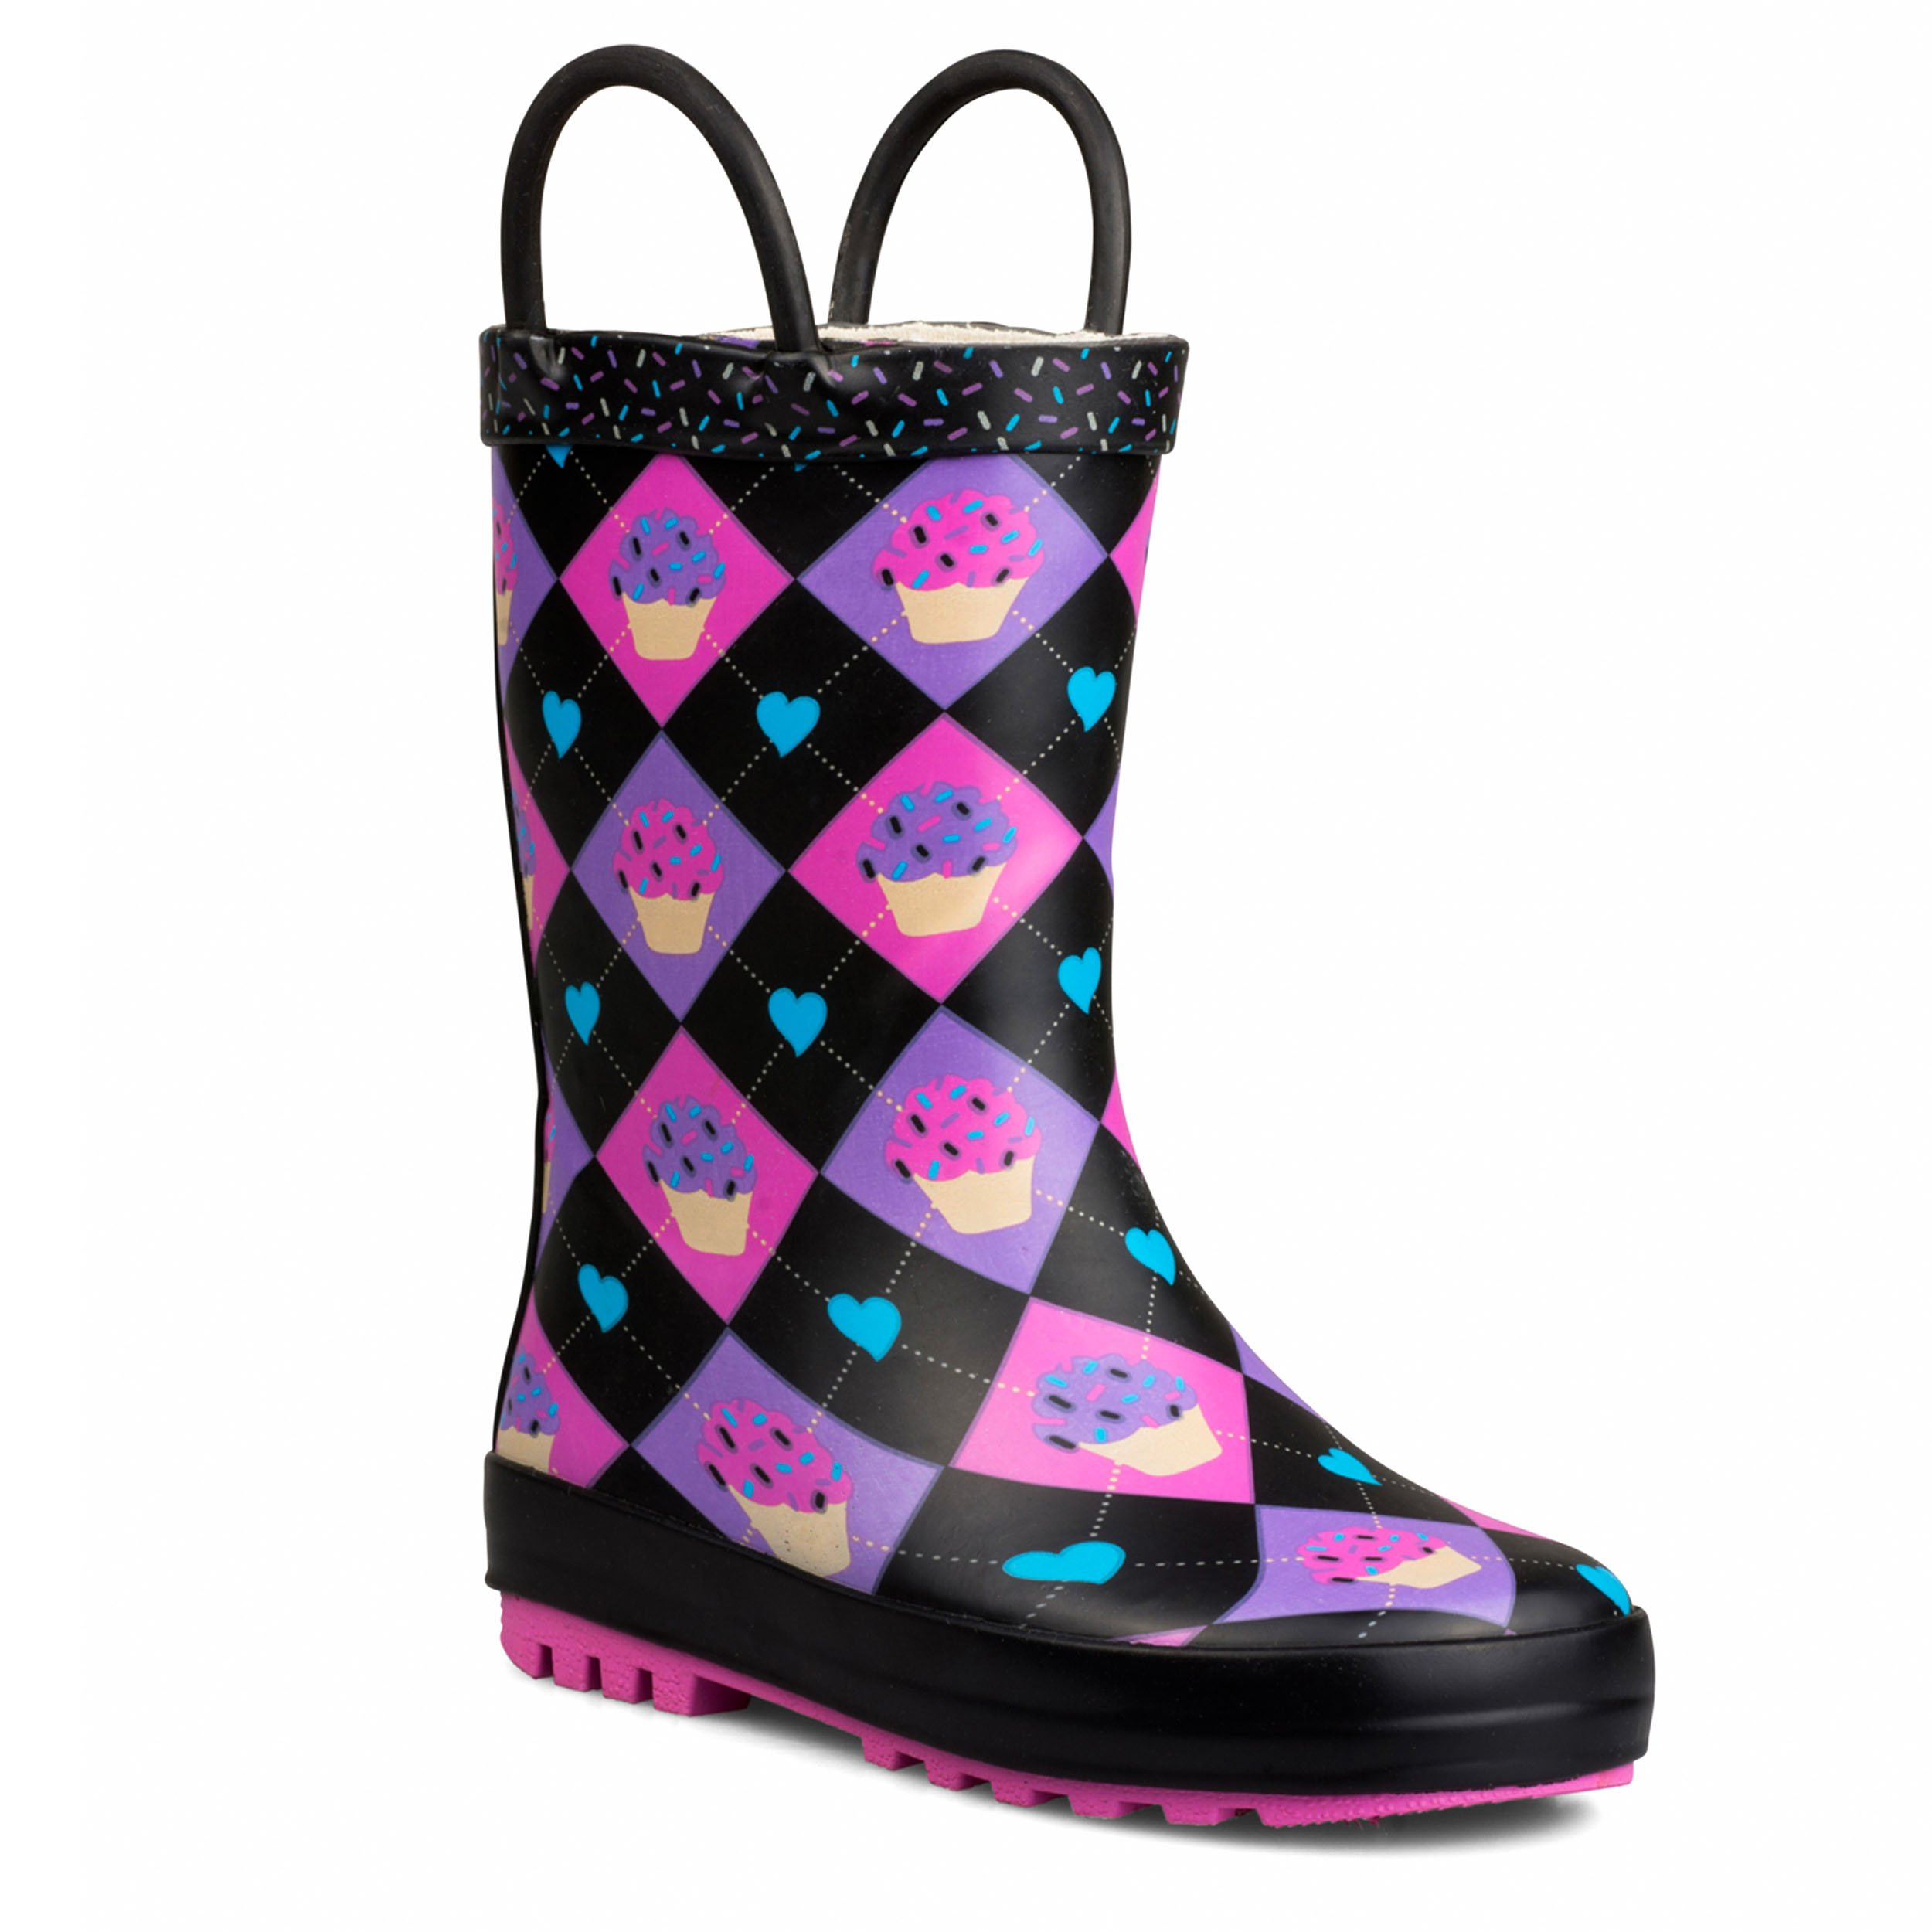 Chillipop Kids Rainboots, Waterproof, Pull Handles, Fun Prints/Colors